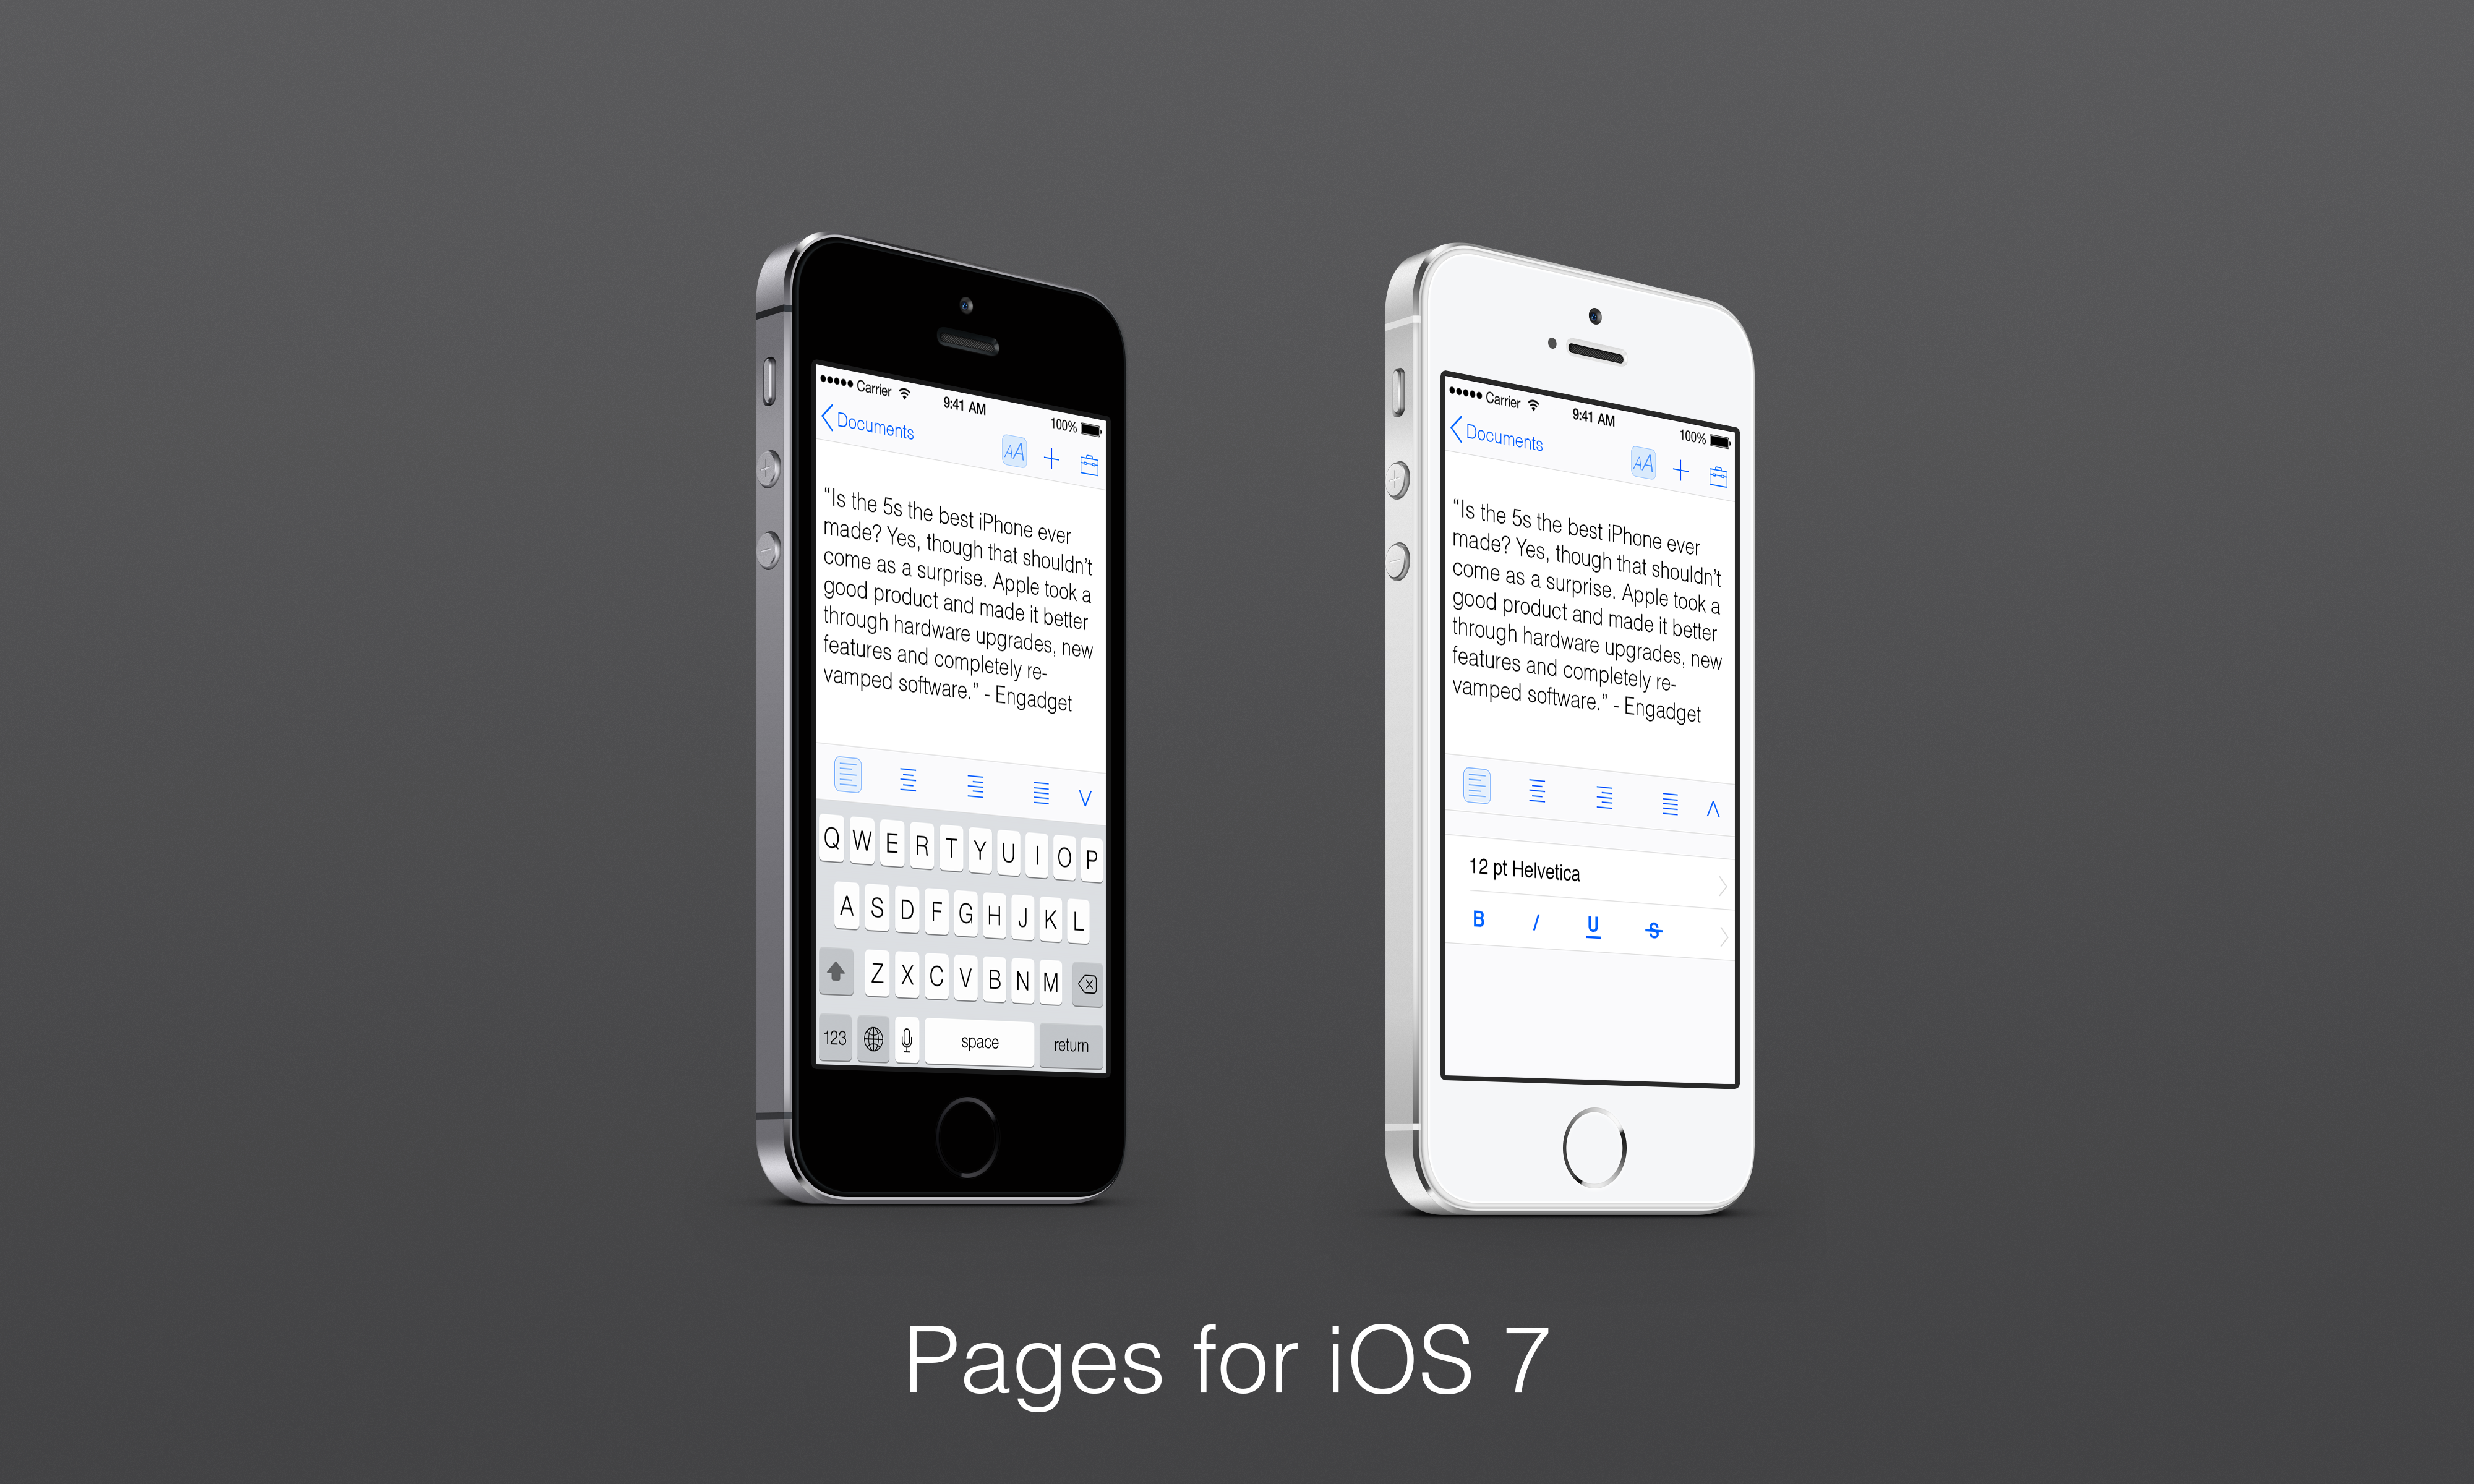 Pagesforios7